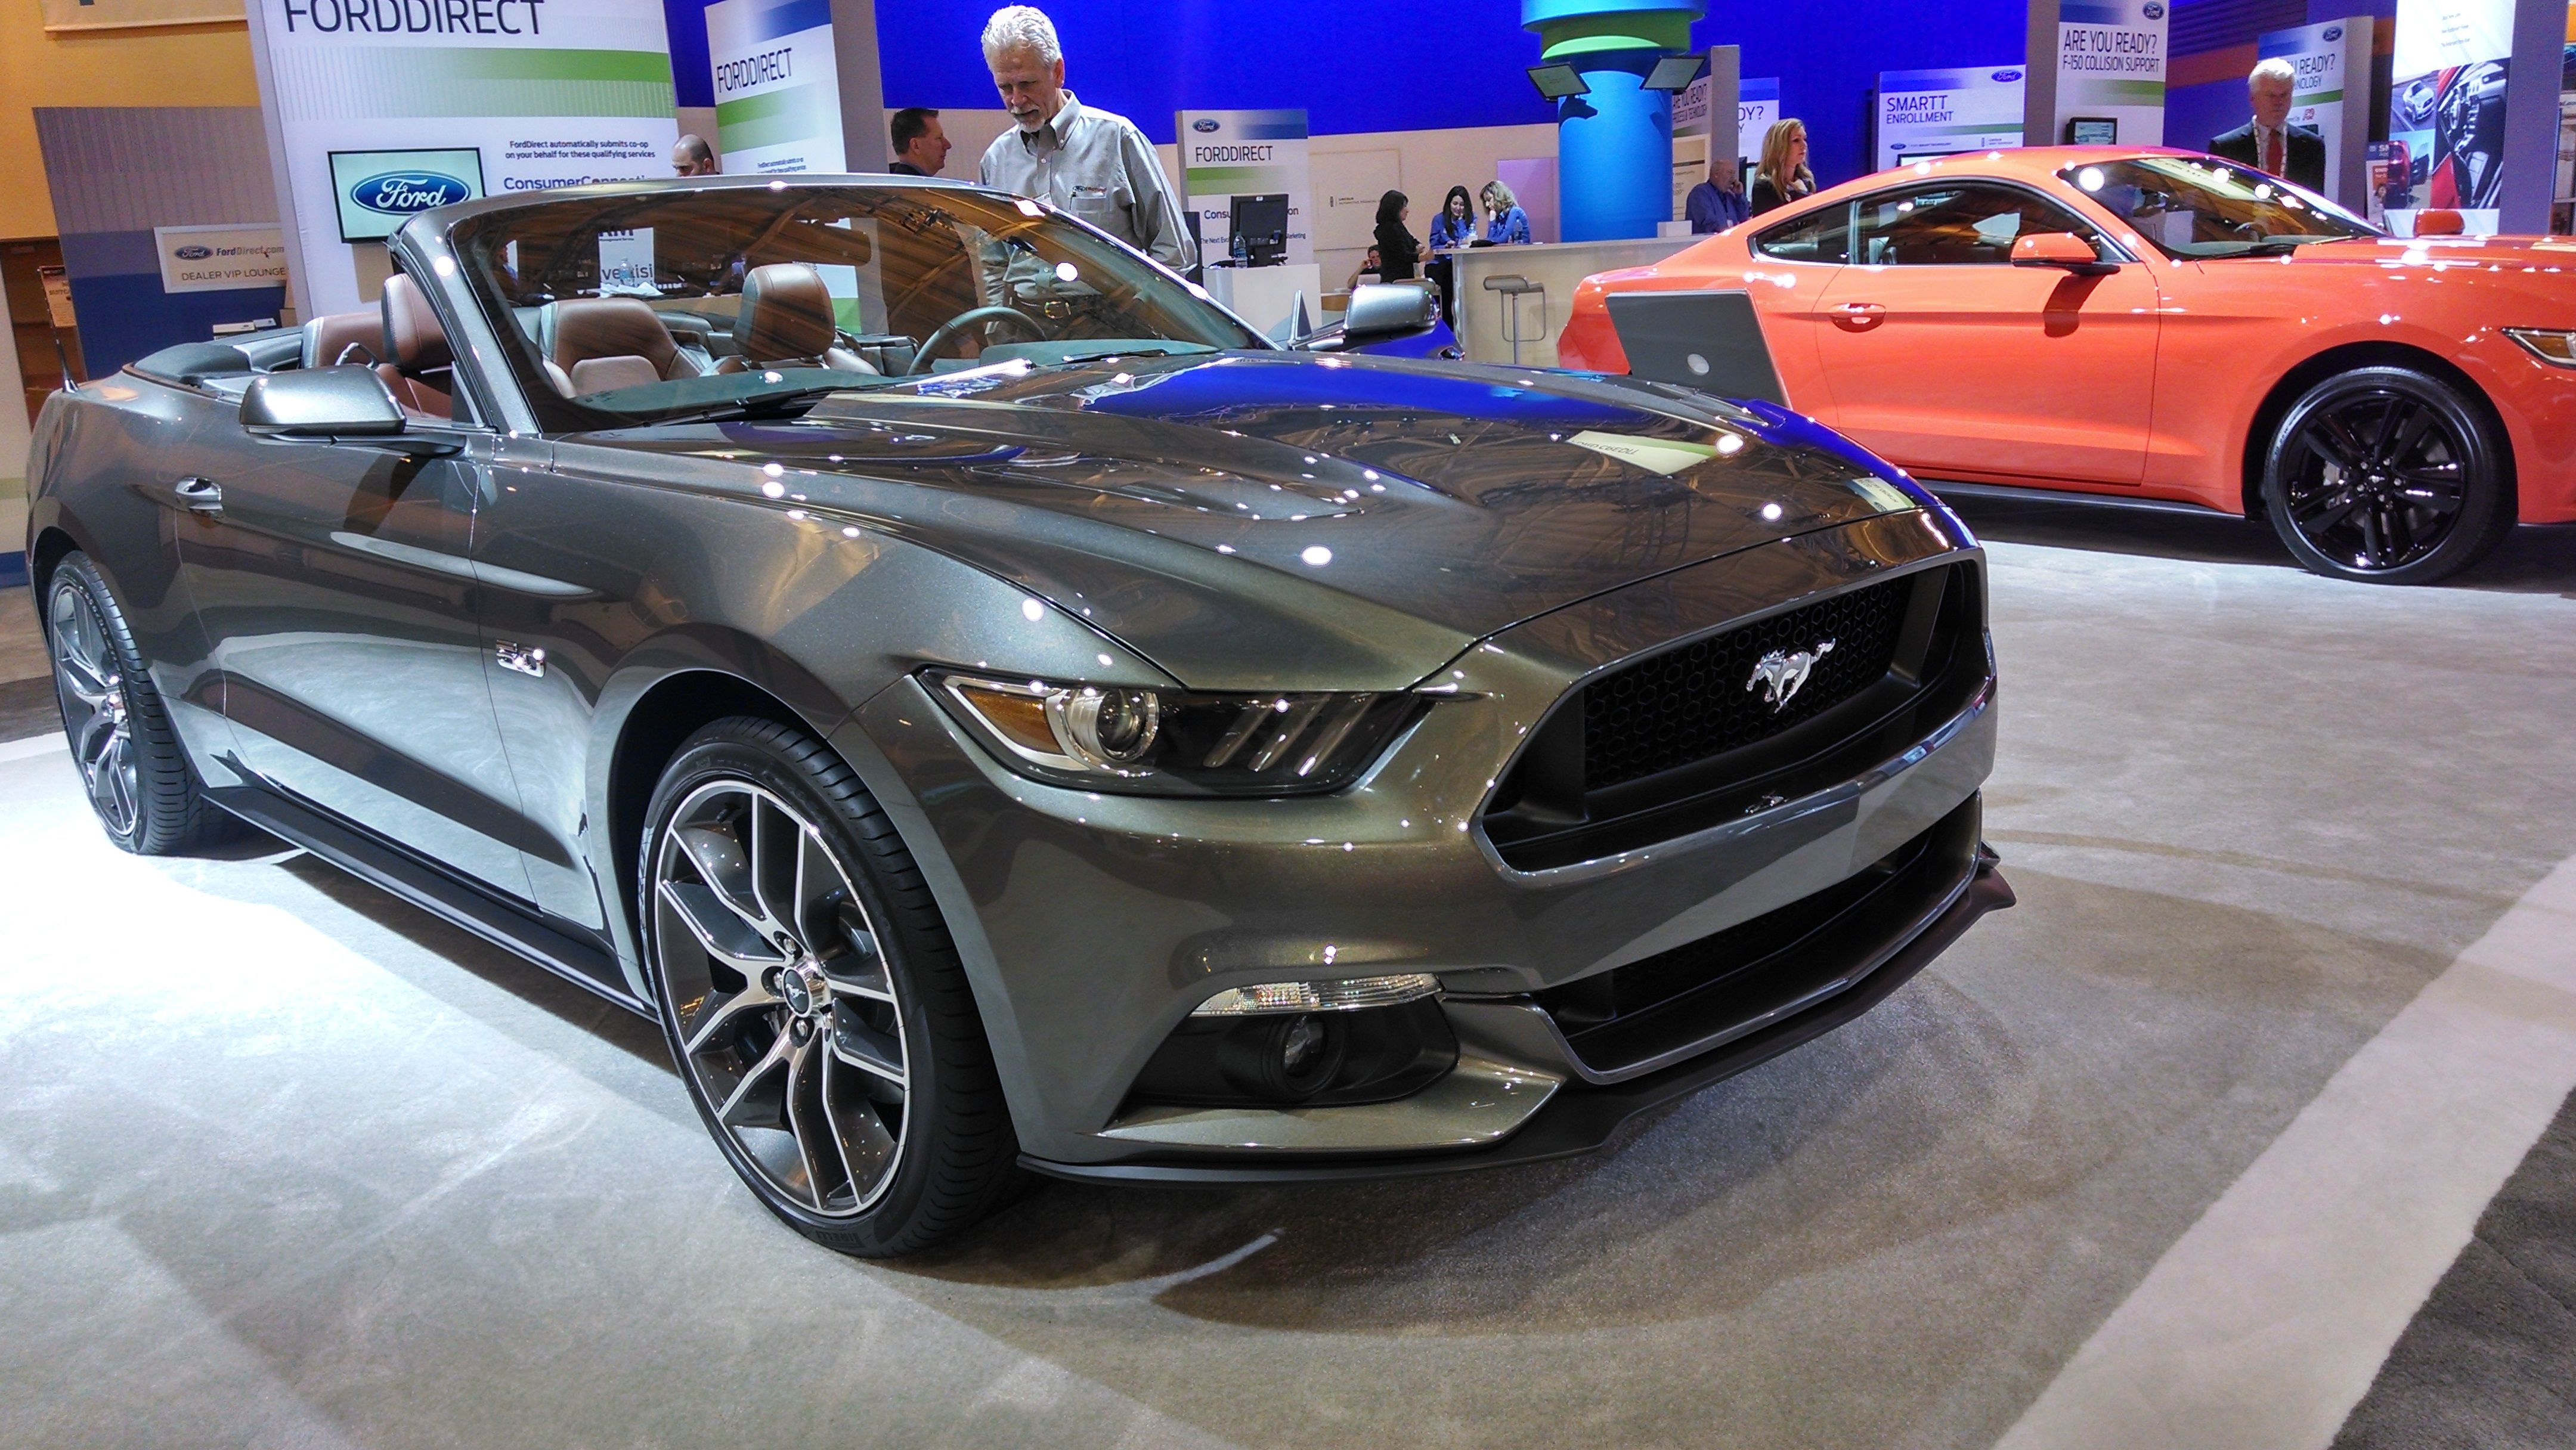 New 2015 ford mustang convertible at nada convention